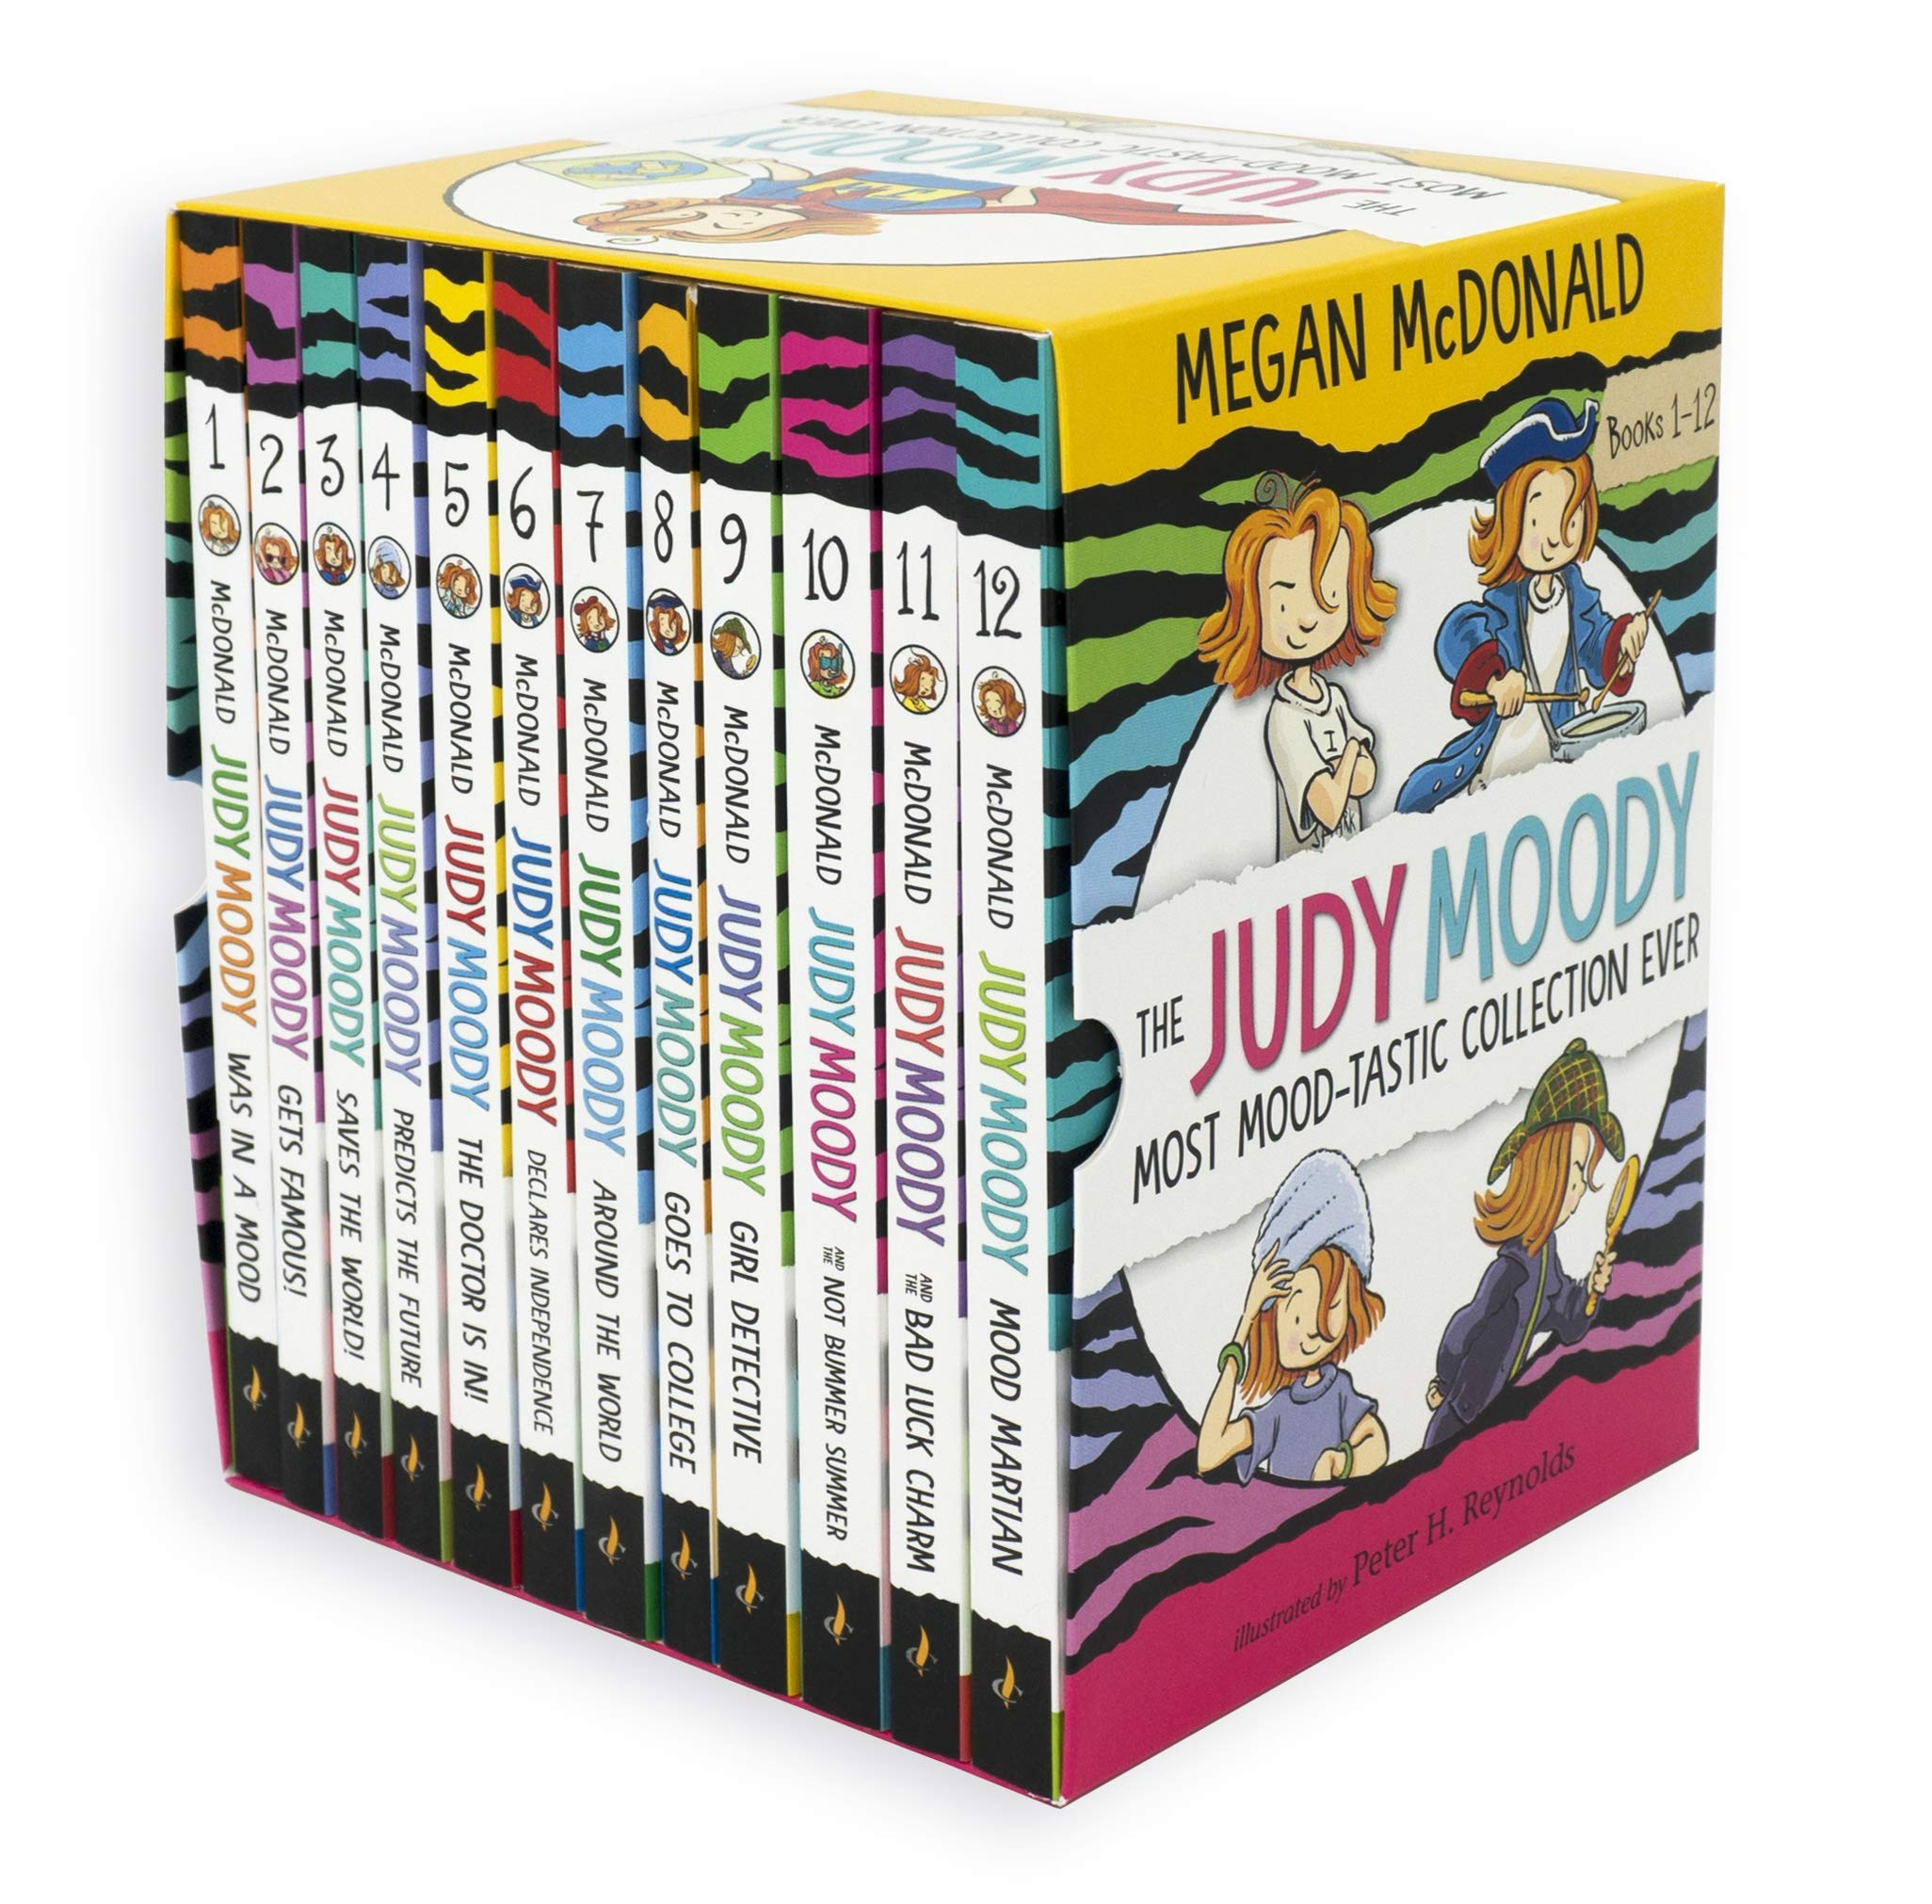 Judy Moody Collection ONLY $38.98 on Amazon (Reg. $72)